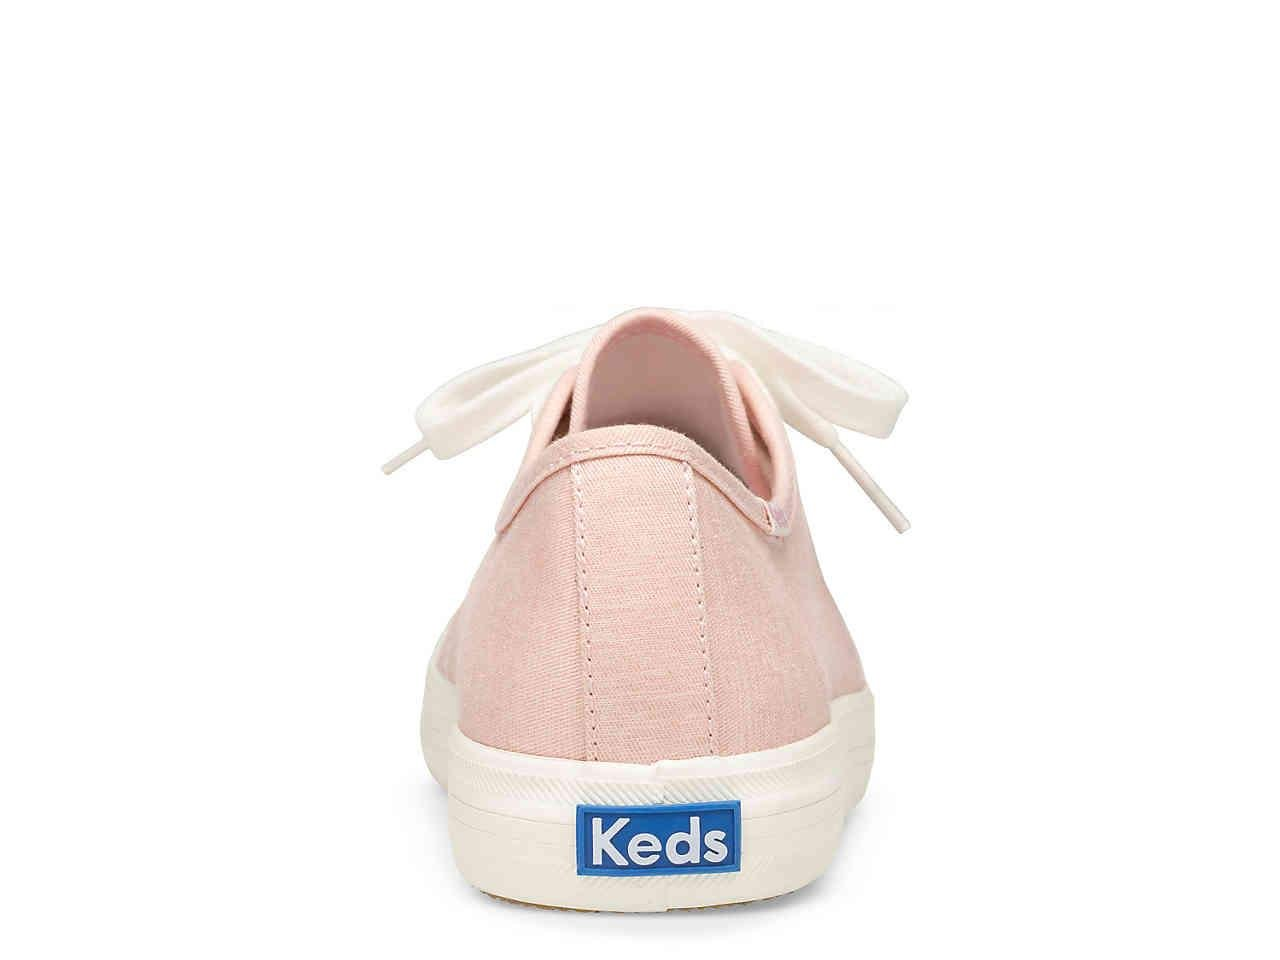 Keds In Pink Mini Kickstart ChambrayblueWomen's Shoes Lyst 6Y7gybf